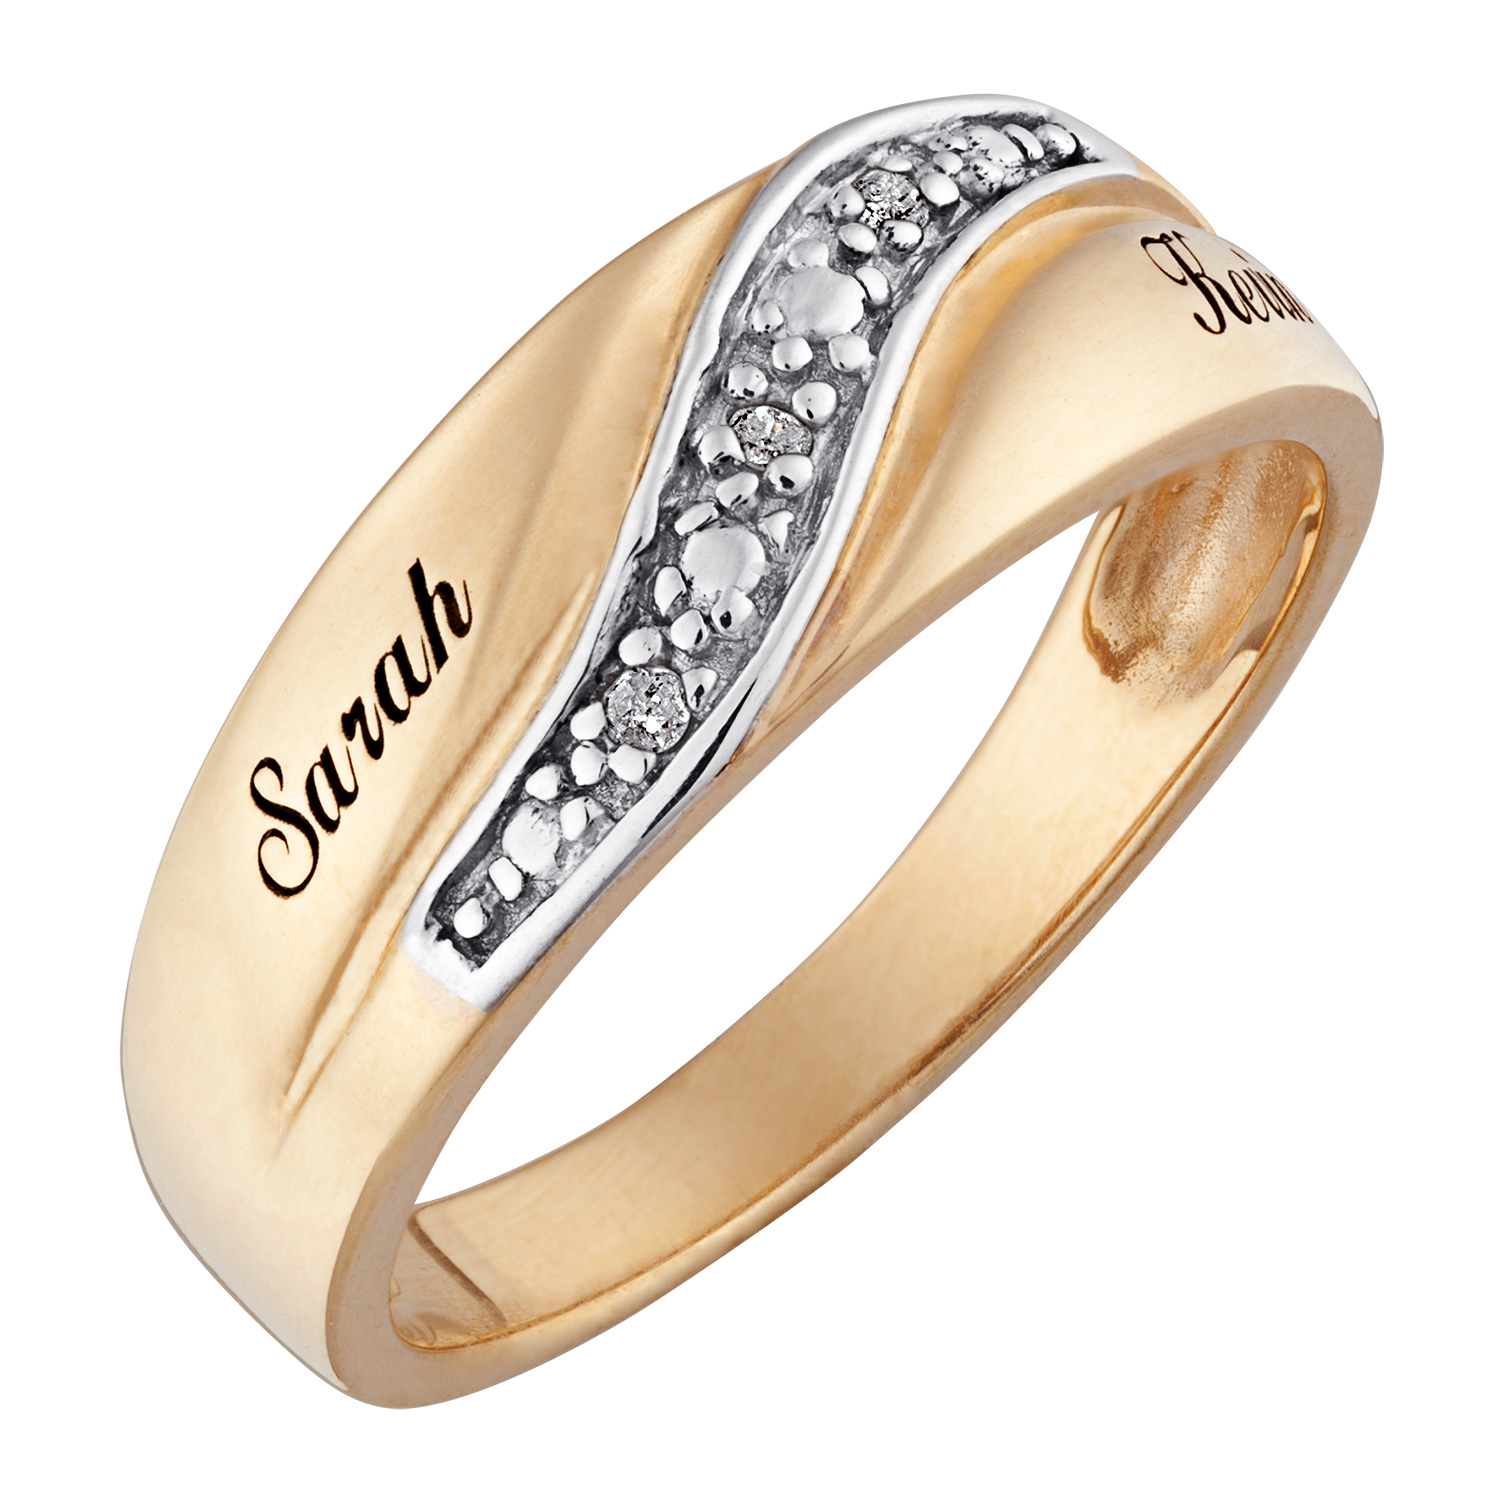 Men's Diamond Accent Wedding Band In Sterling Silver With 18K Gold Plate (2 Names)|Zales Pertaining To Newest Diamond Accent Anniversary Bands In Sterling Silver (Gallery 16 of 25)